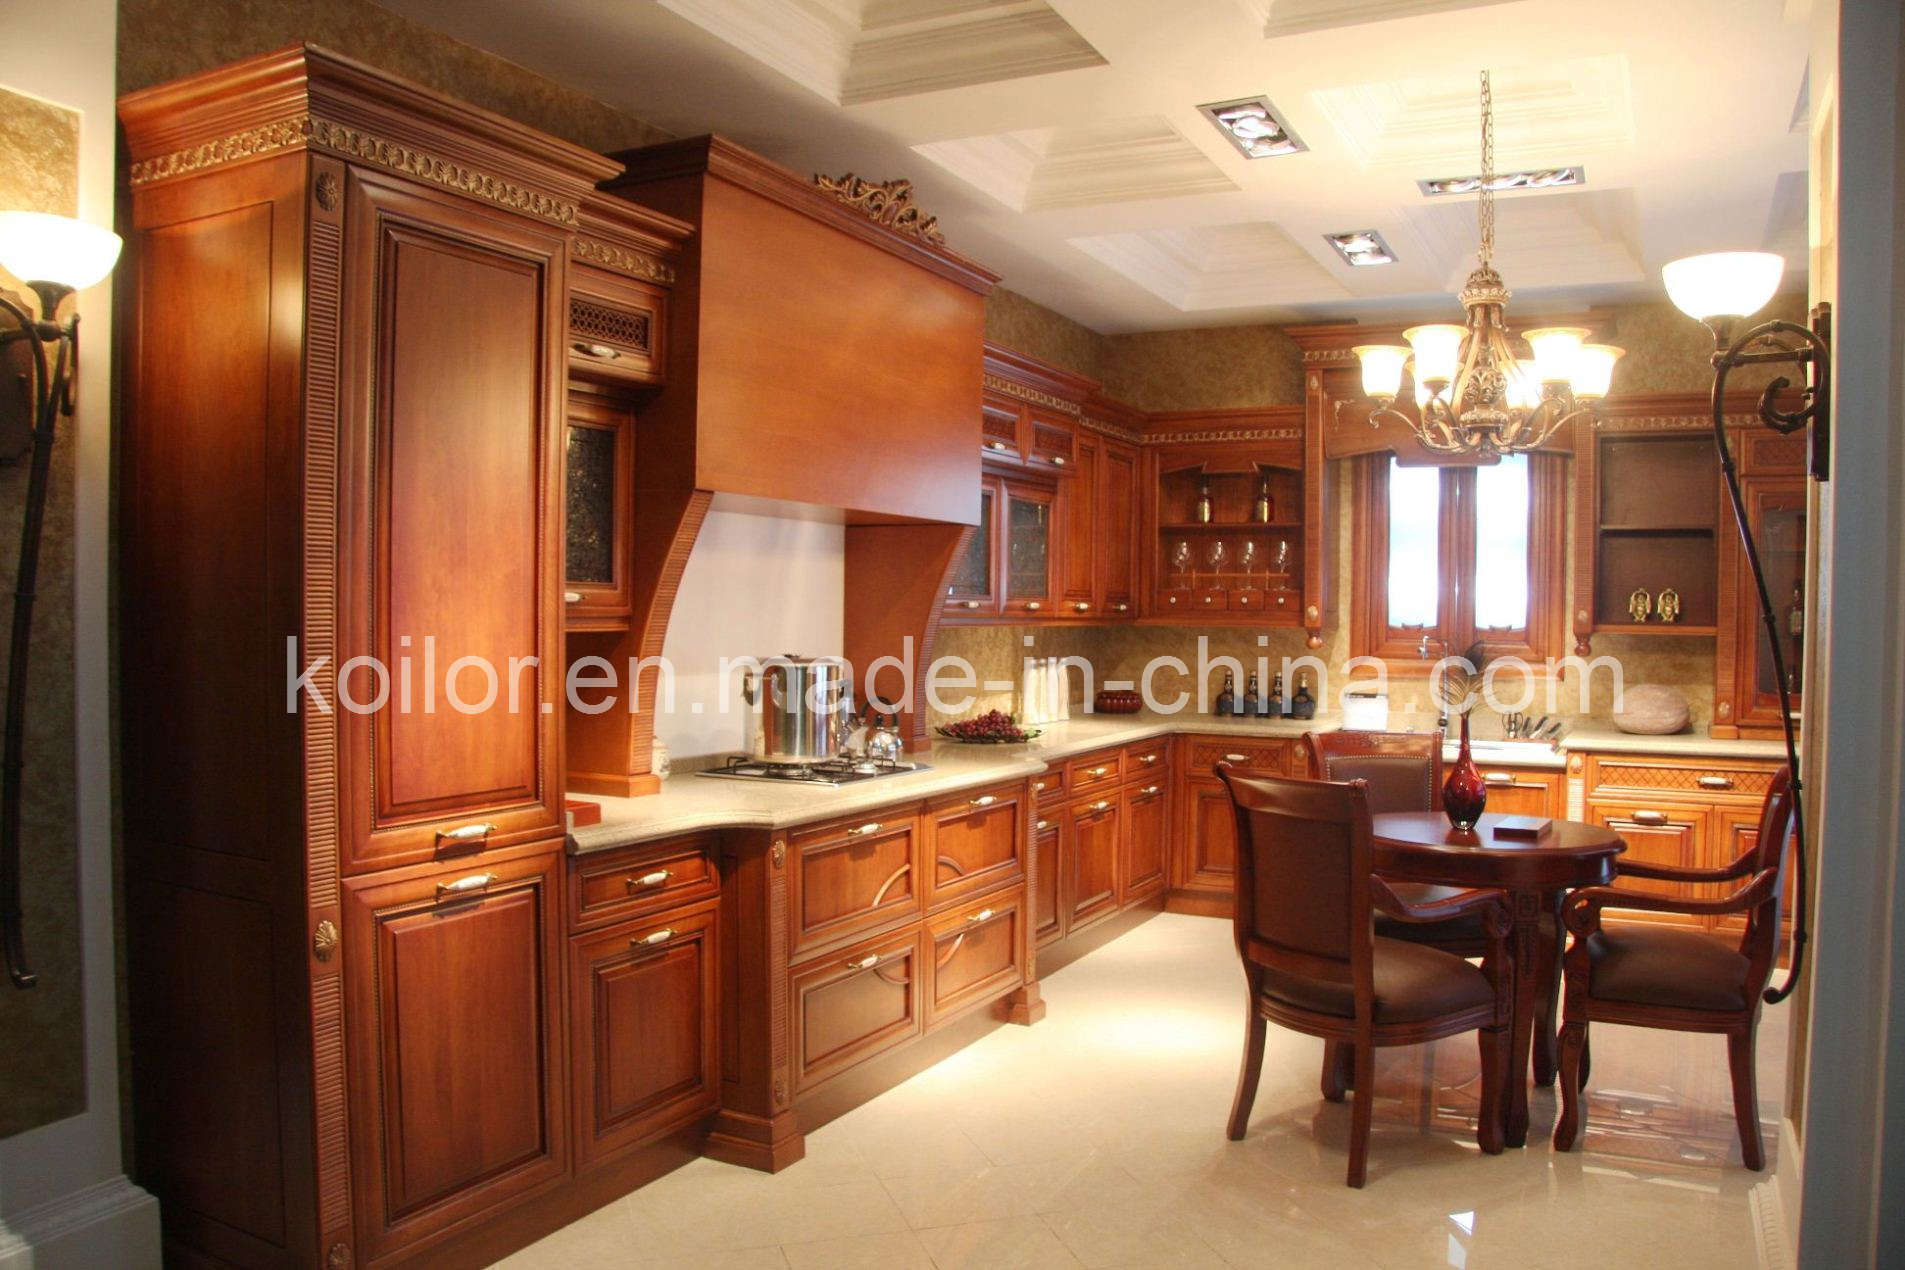 China kitchen cabinet solid wood kitchen cabinets royal for Wood cabinets